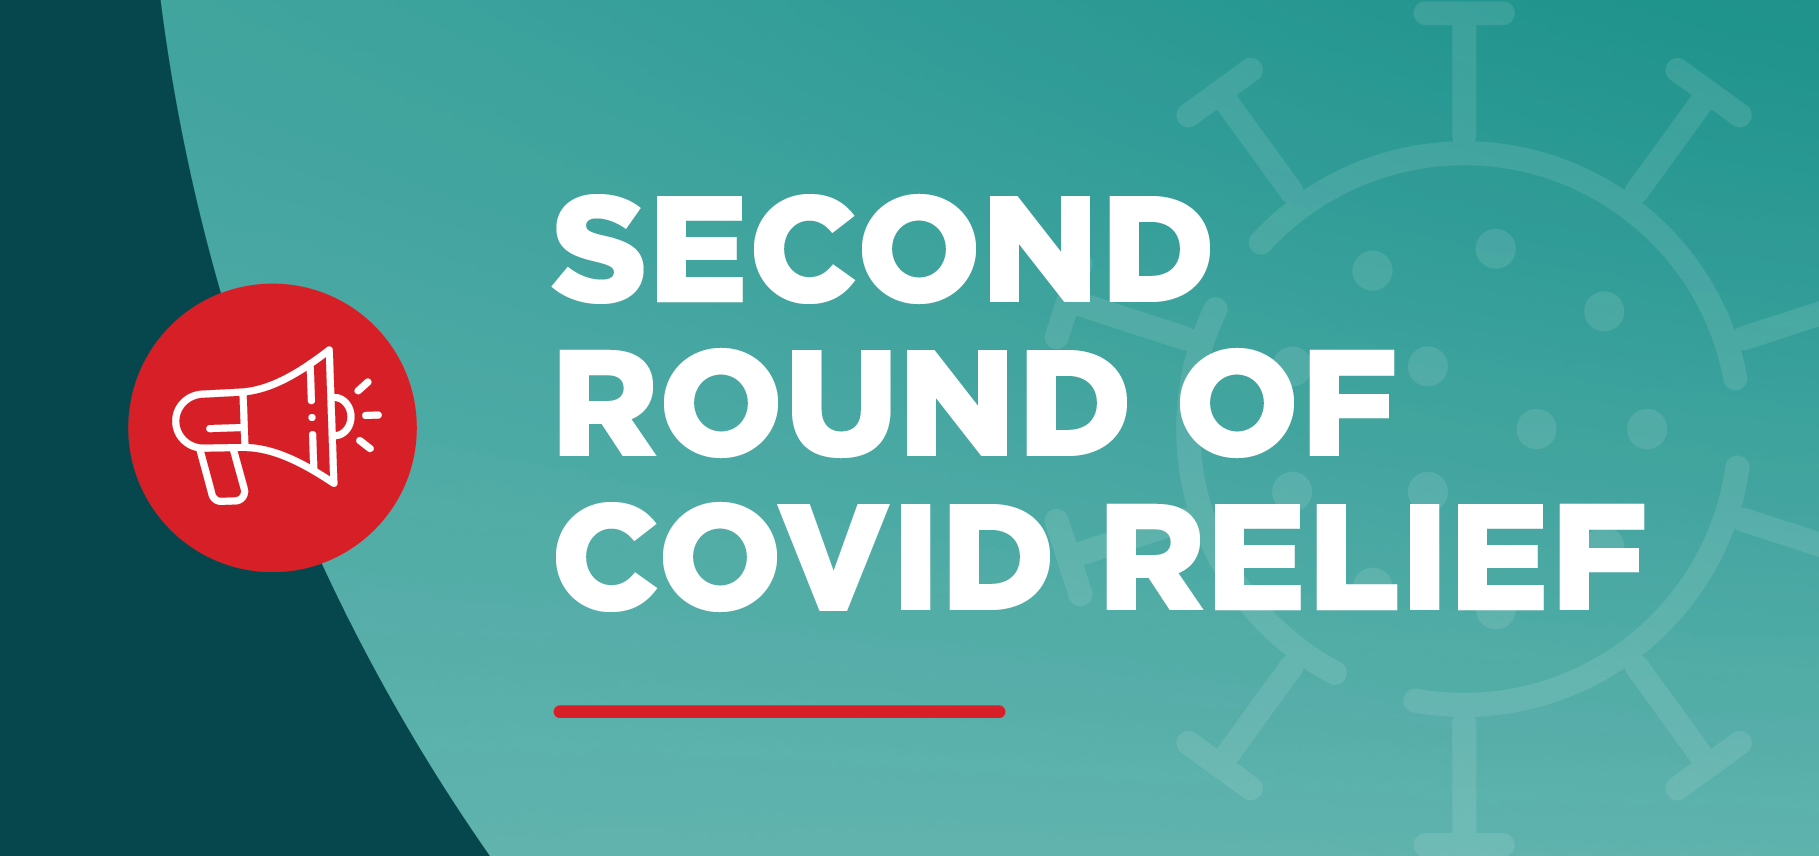 Casey-Peterson-Second-Round-COVID-Relief_Secondary-Blog_708x333.png